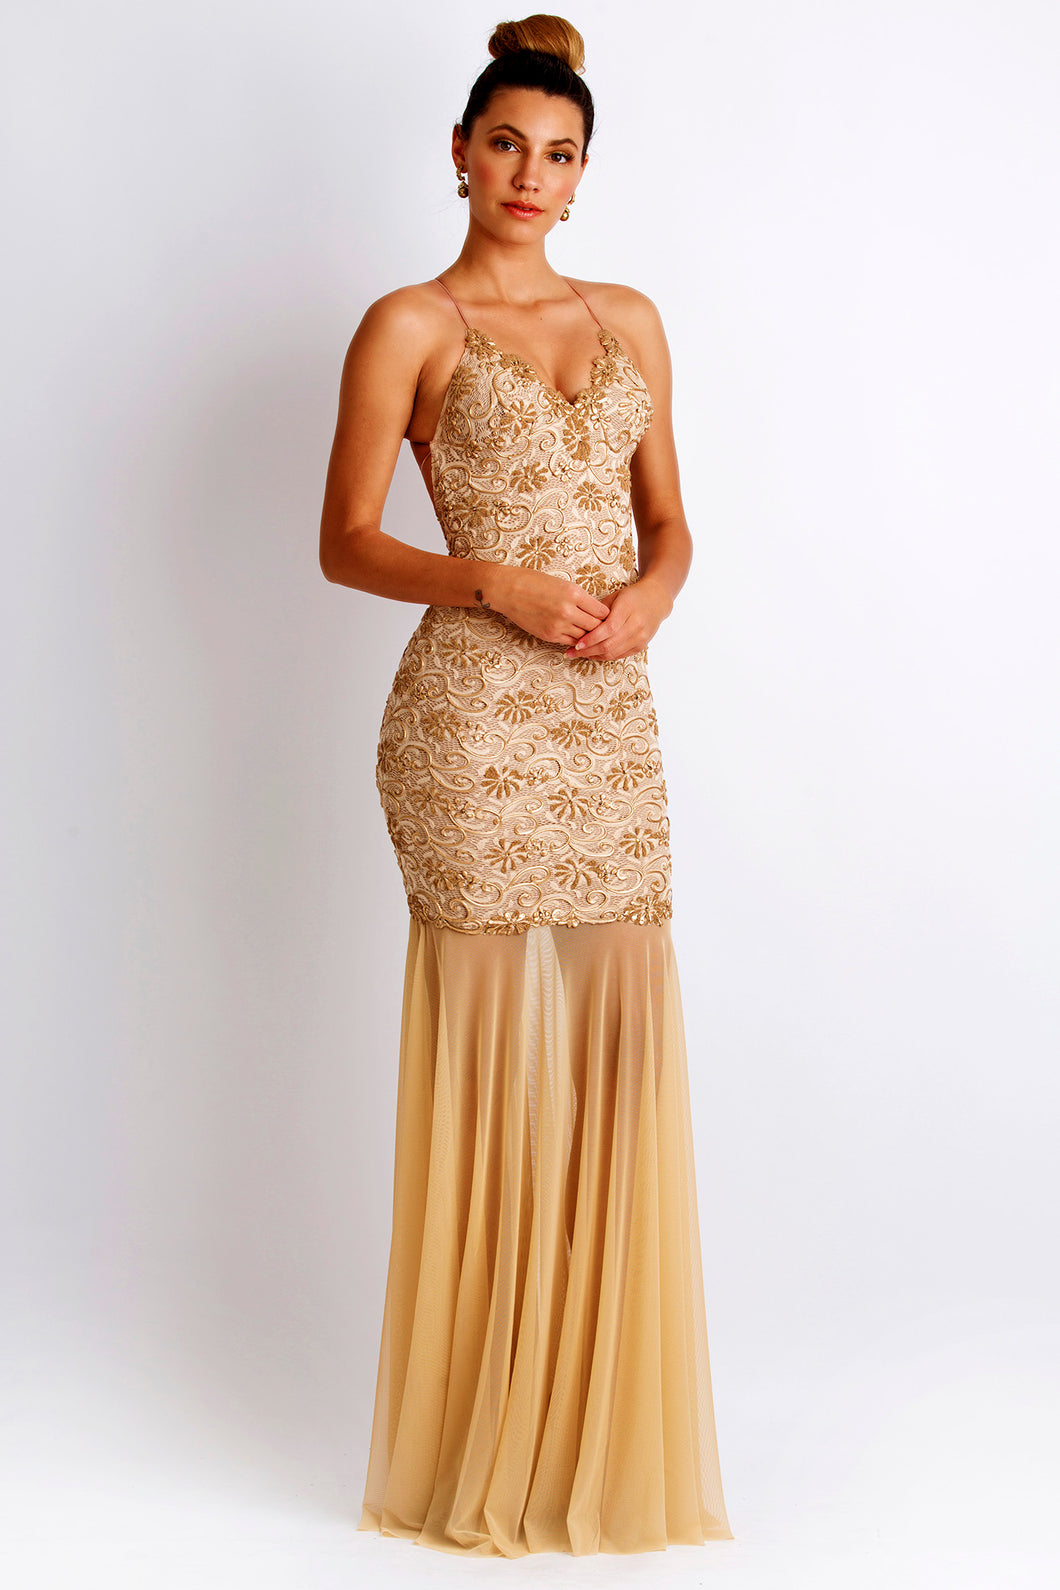 Emily Painted Caviar Champagne Gowns - Long Party Dress - BACCIO Couture